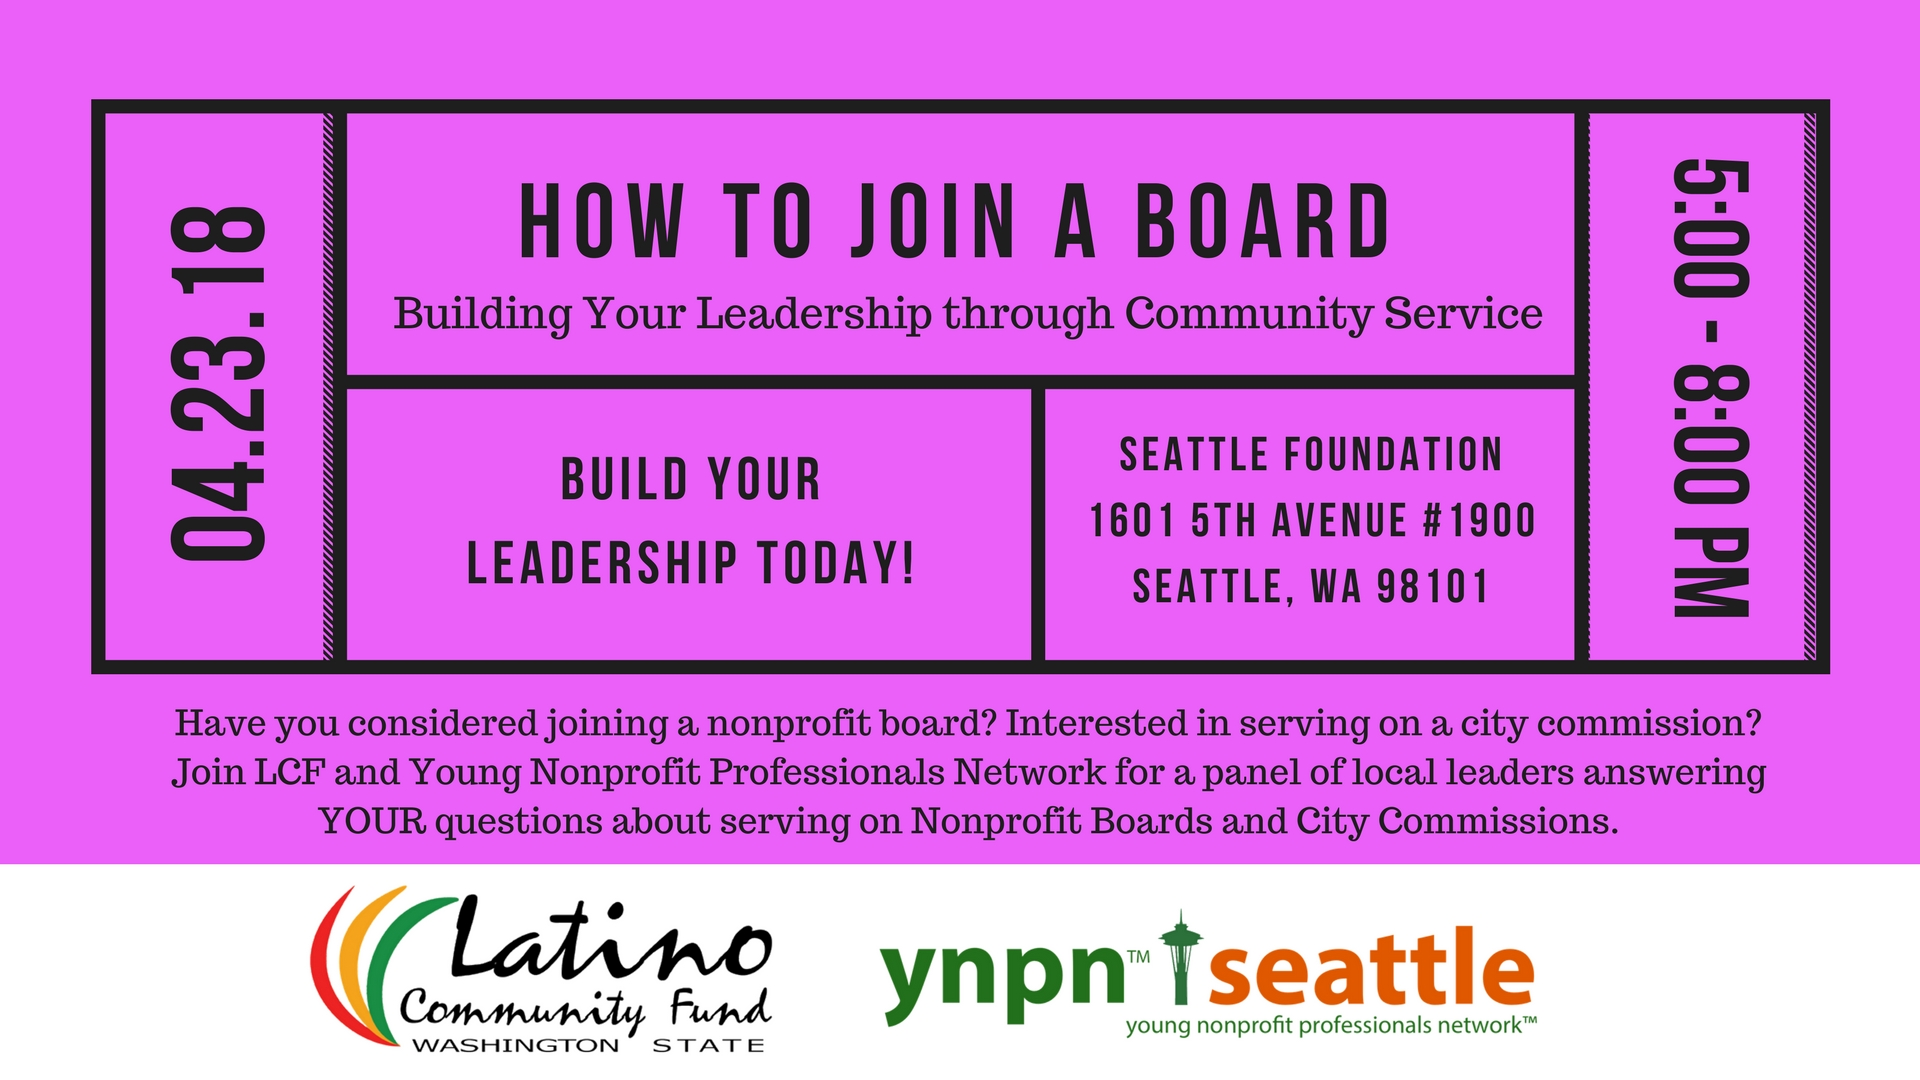 042318_LCF_Latinos_in_Tech_Mixer_YNPN_How_to_Join_a_Board.jpg